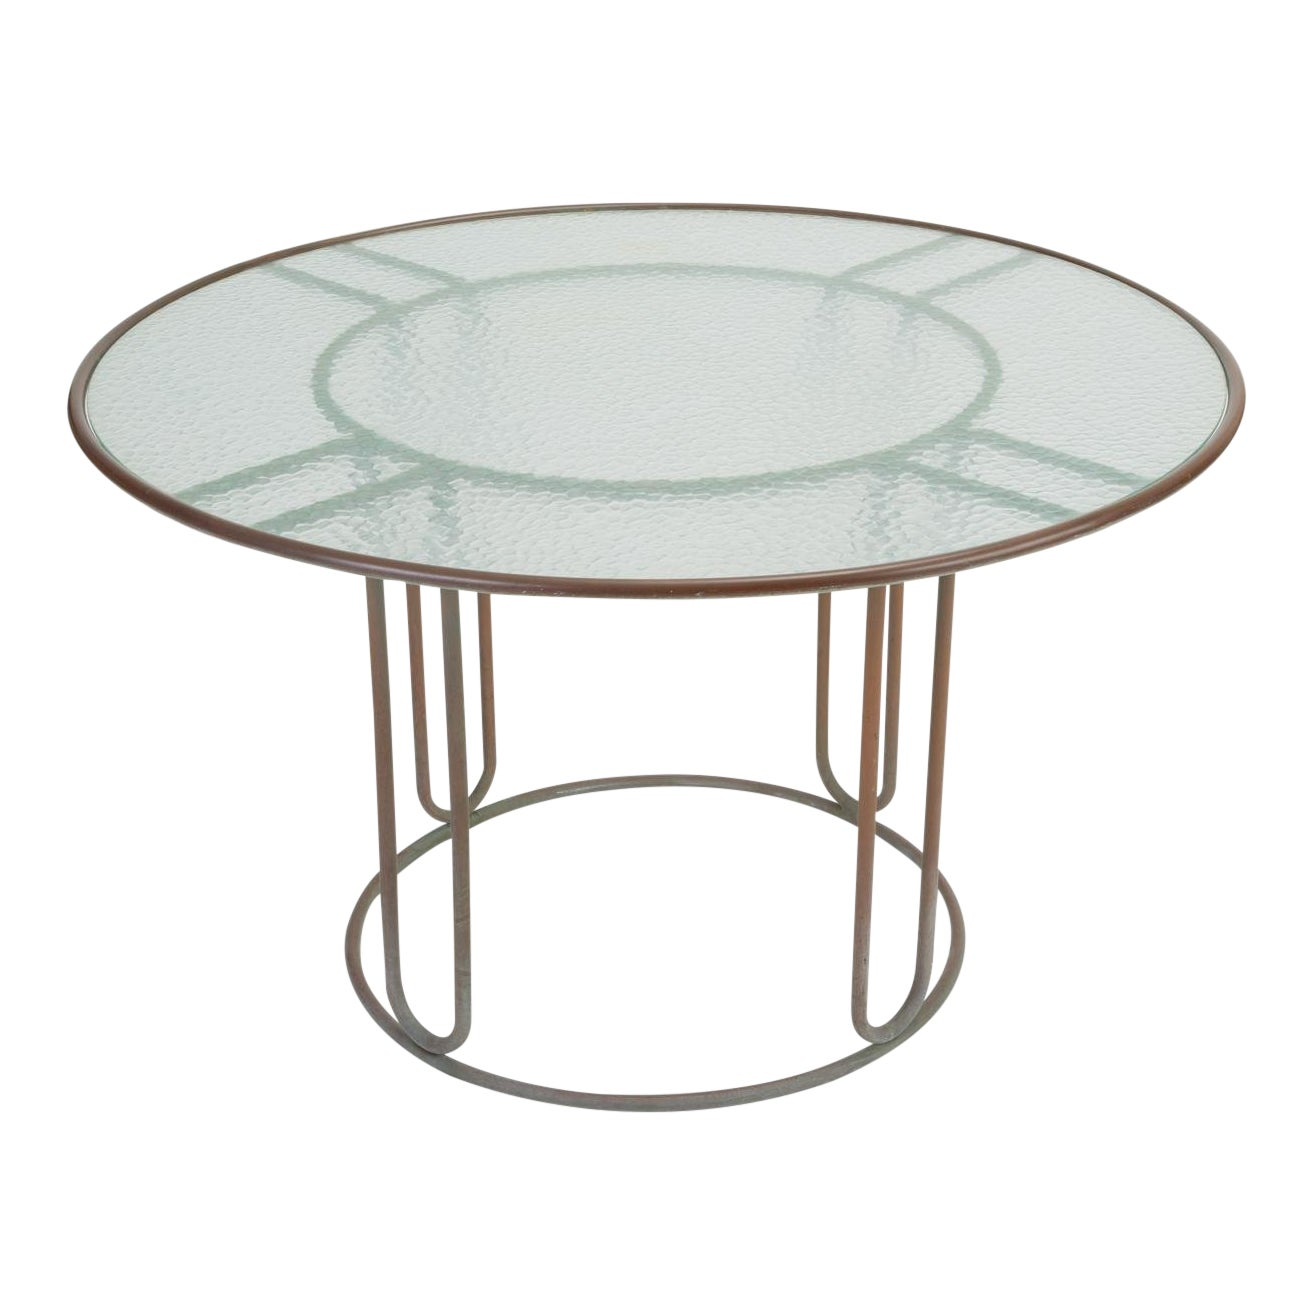 Sophisticated Round Patio Table With Oxidized Bronze Frame By